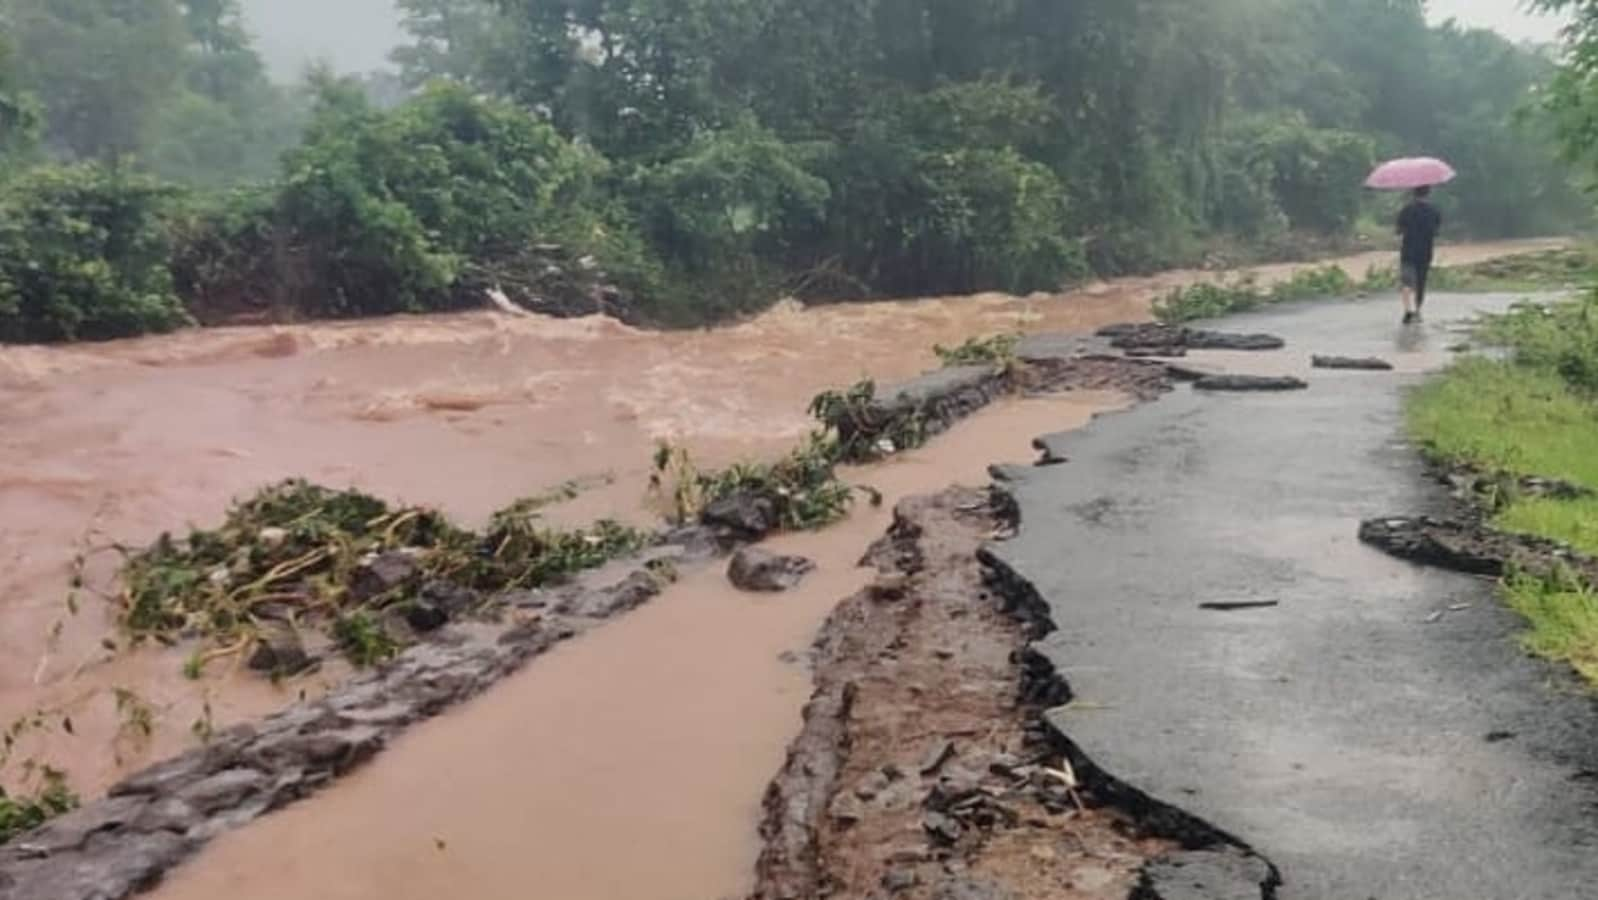 5 dead in Raigad landslide triggered by heavy rains | Latest News India - Hindustan Times